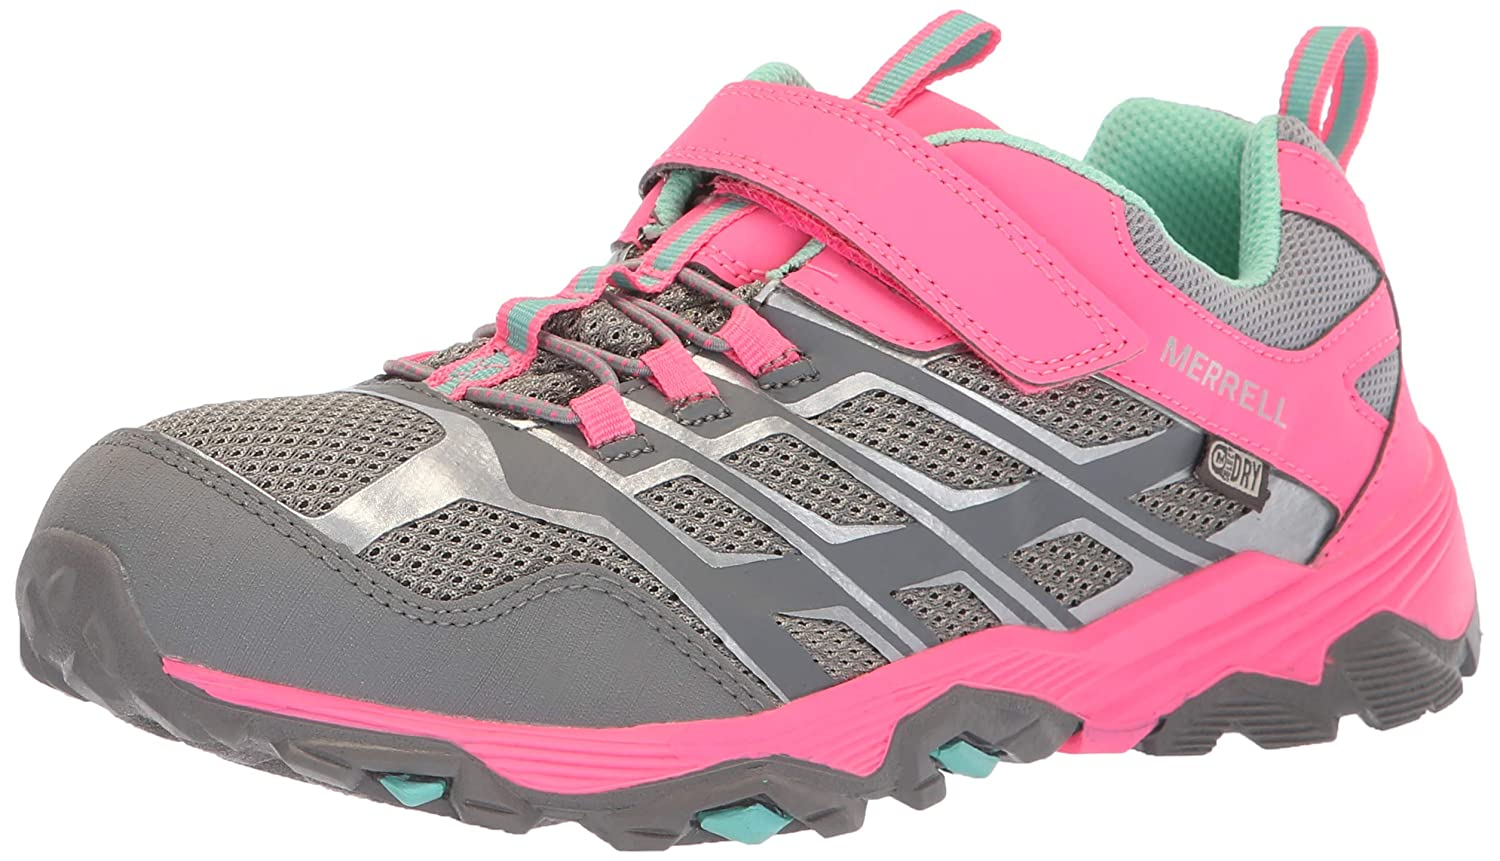 merrell shoe lace size queen size